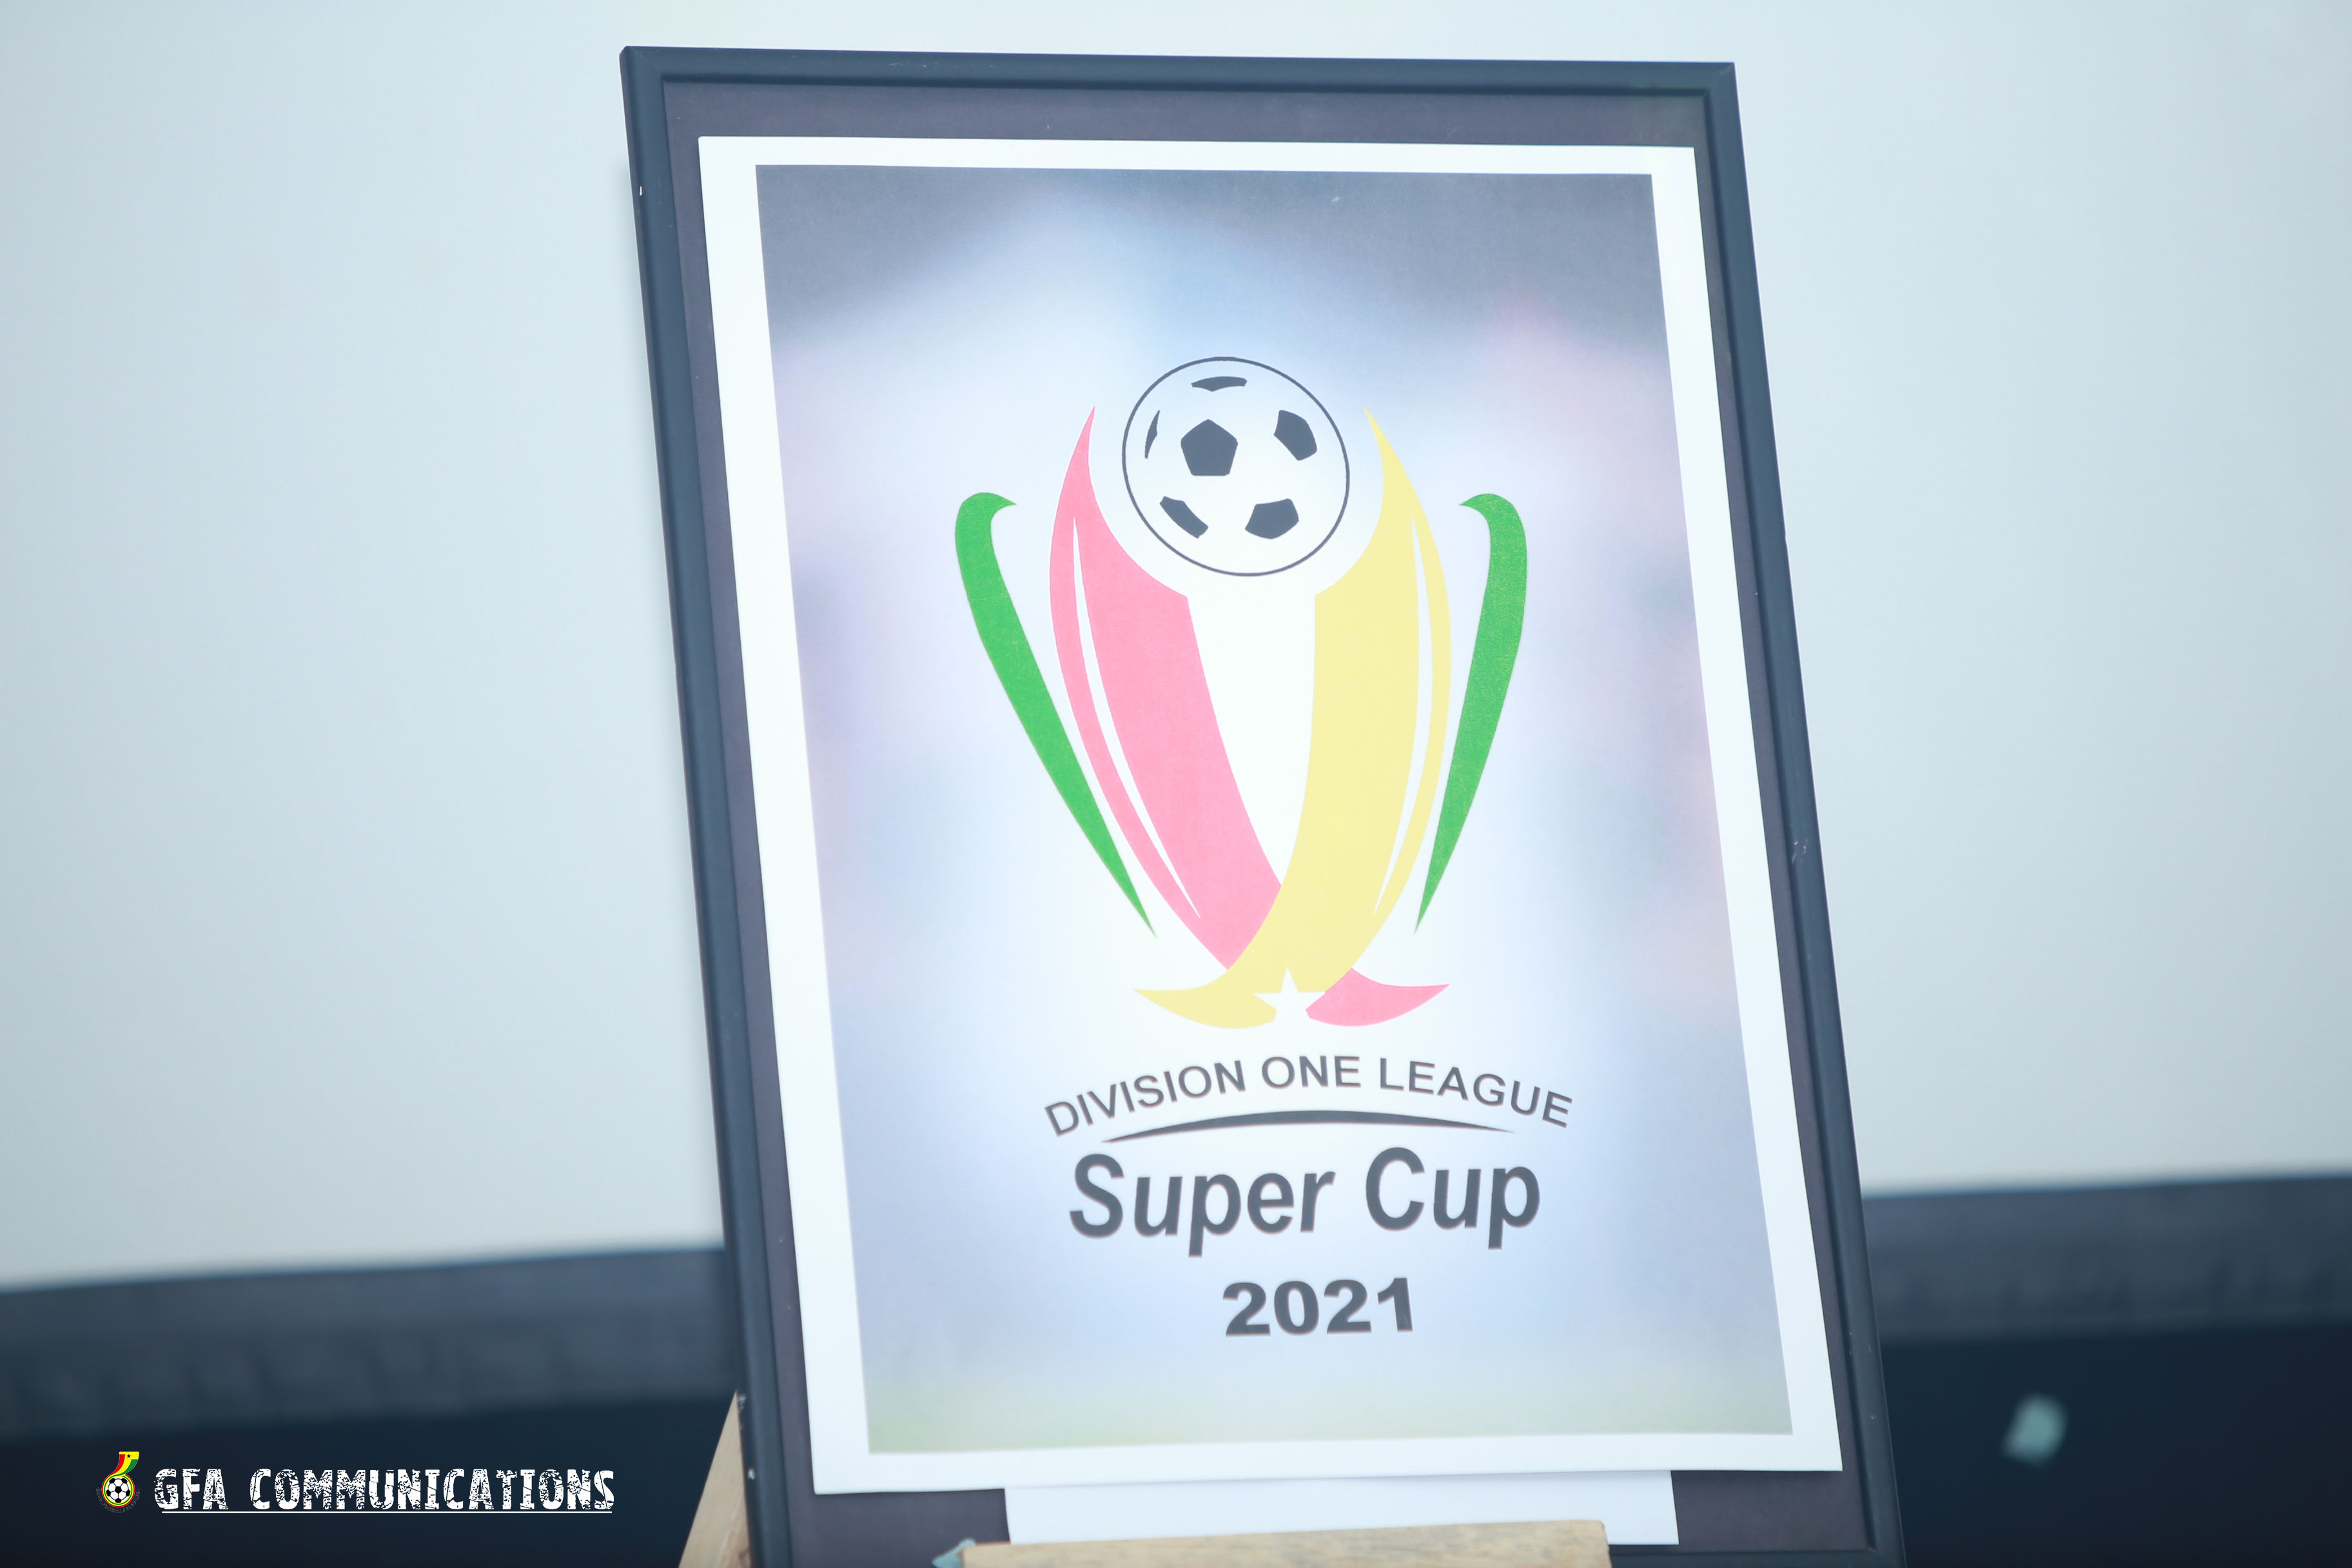 Division One League Super Cup kicks off Wednesday